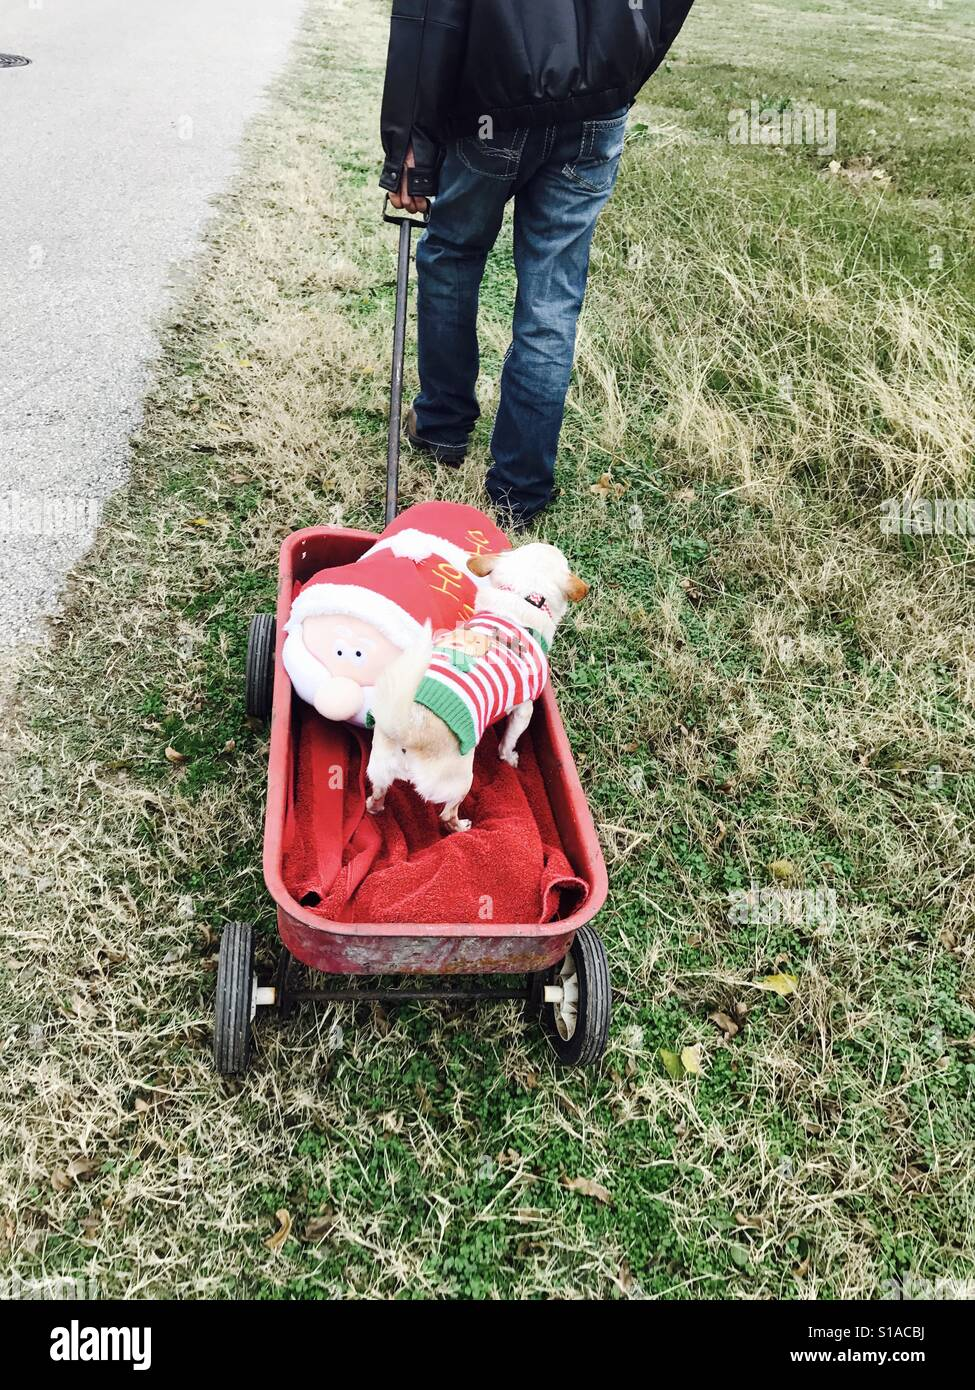 Wagon ride for a spoiled chihuahua that is too pampered to walk on the road or grass. - Stock Image